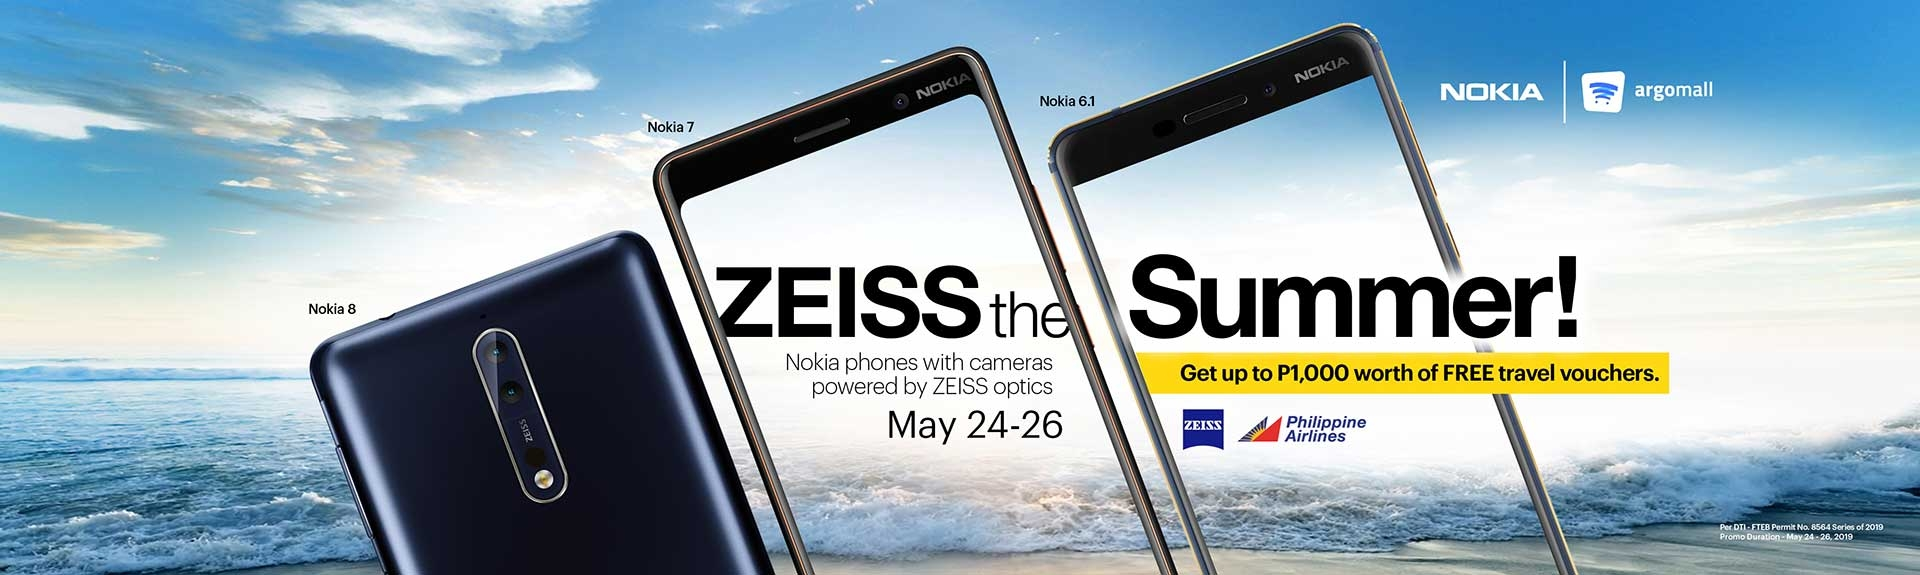 ZEISS the Summer with Nokia!